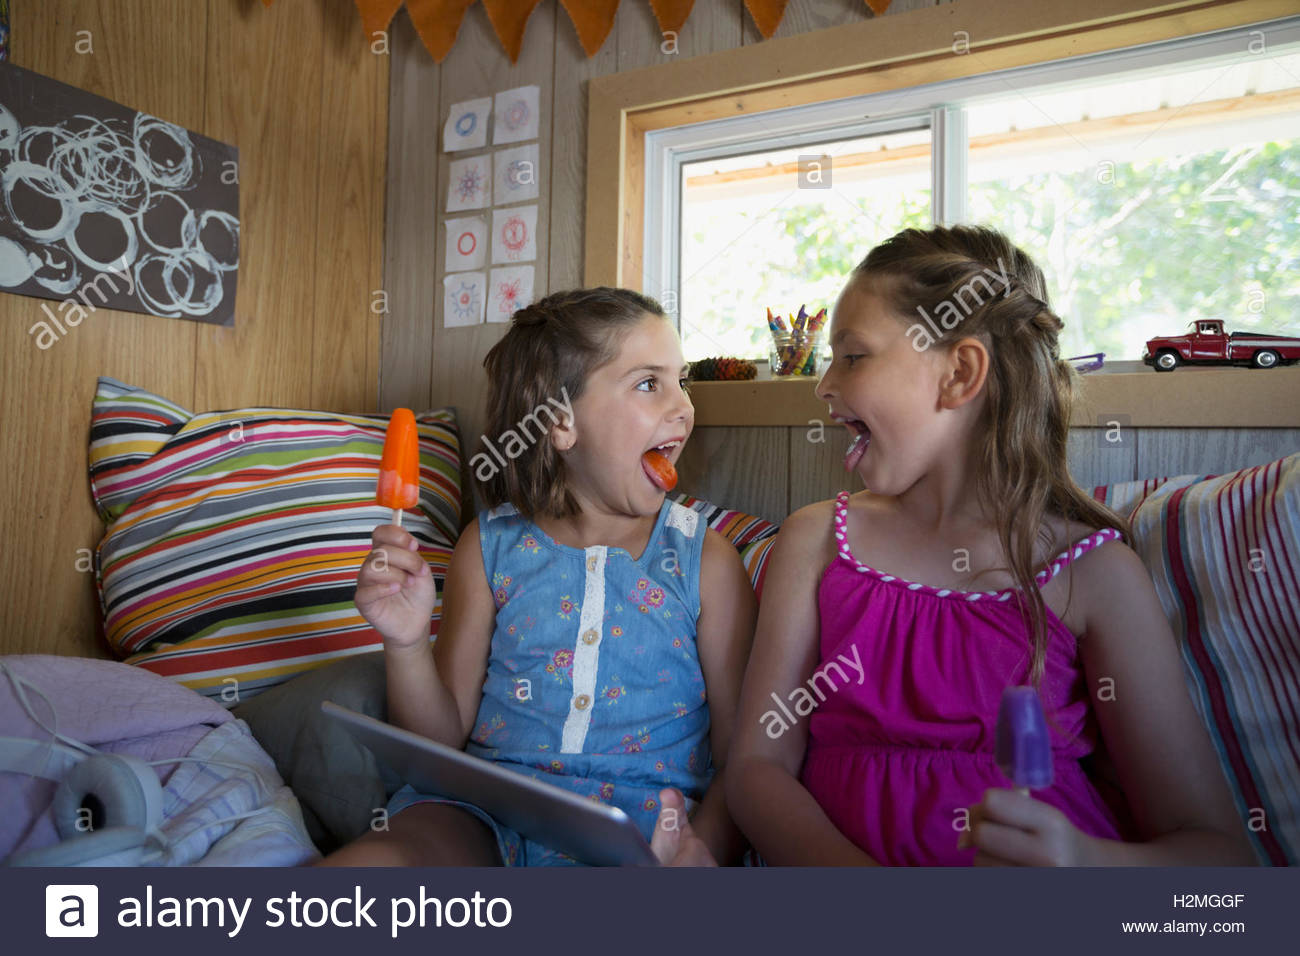 Girls showing purple and orange tongues from flavored ice in treehouse - Stock Image